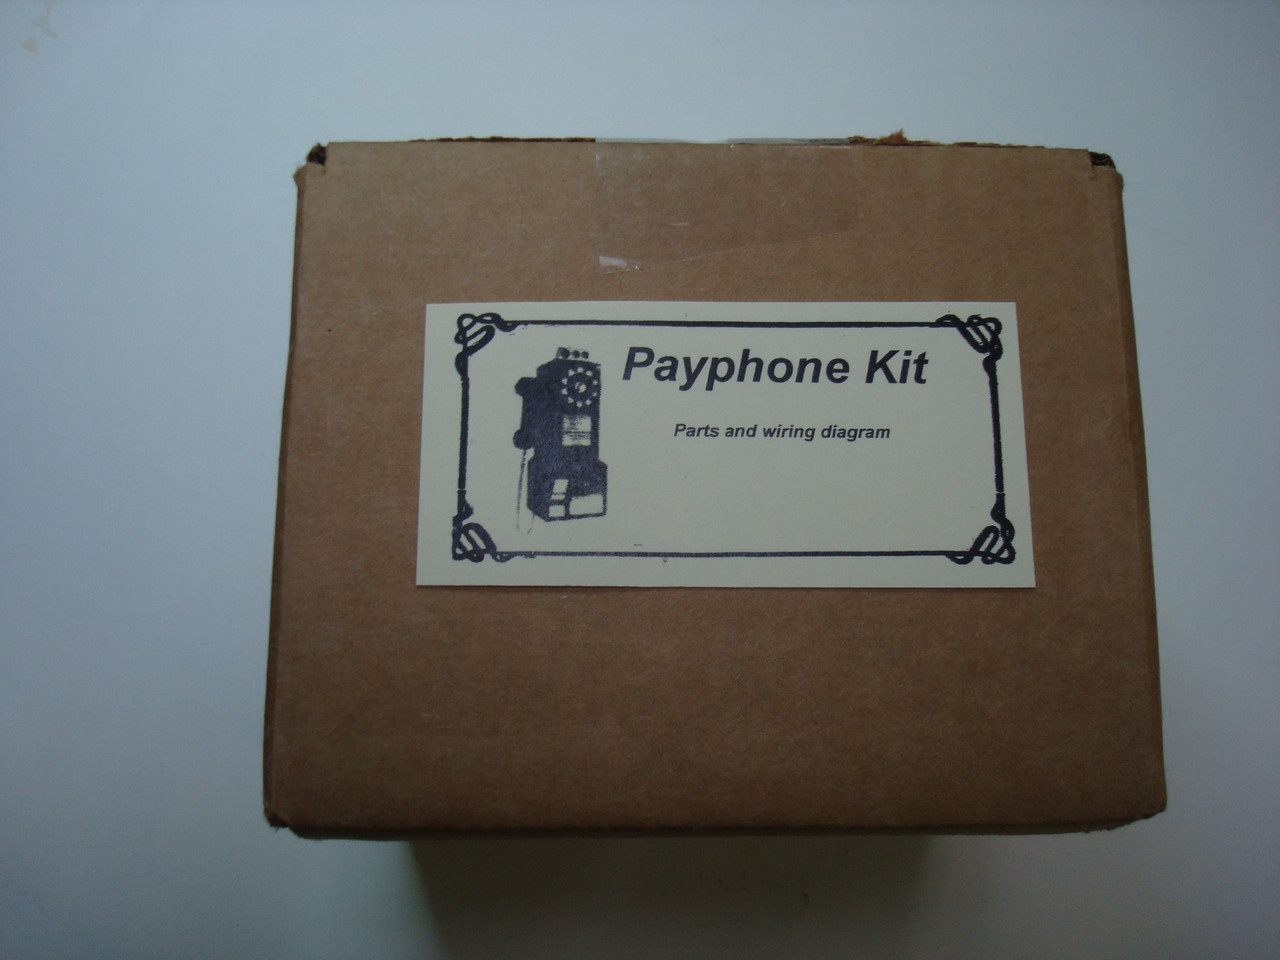 western electric and northern electric 3 slot payphone kit will make house wiring diagrams payphone wiring diagram [ 1280 x 960 Pixel ]